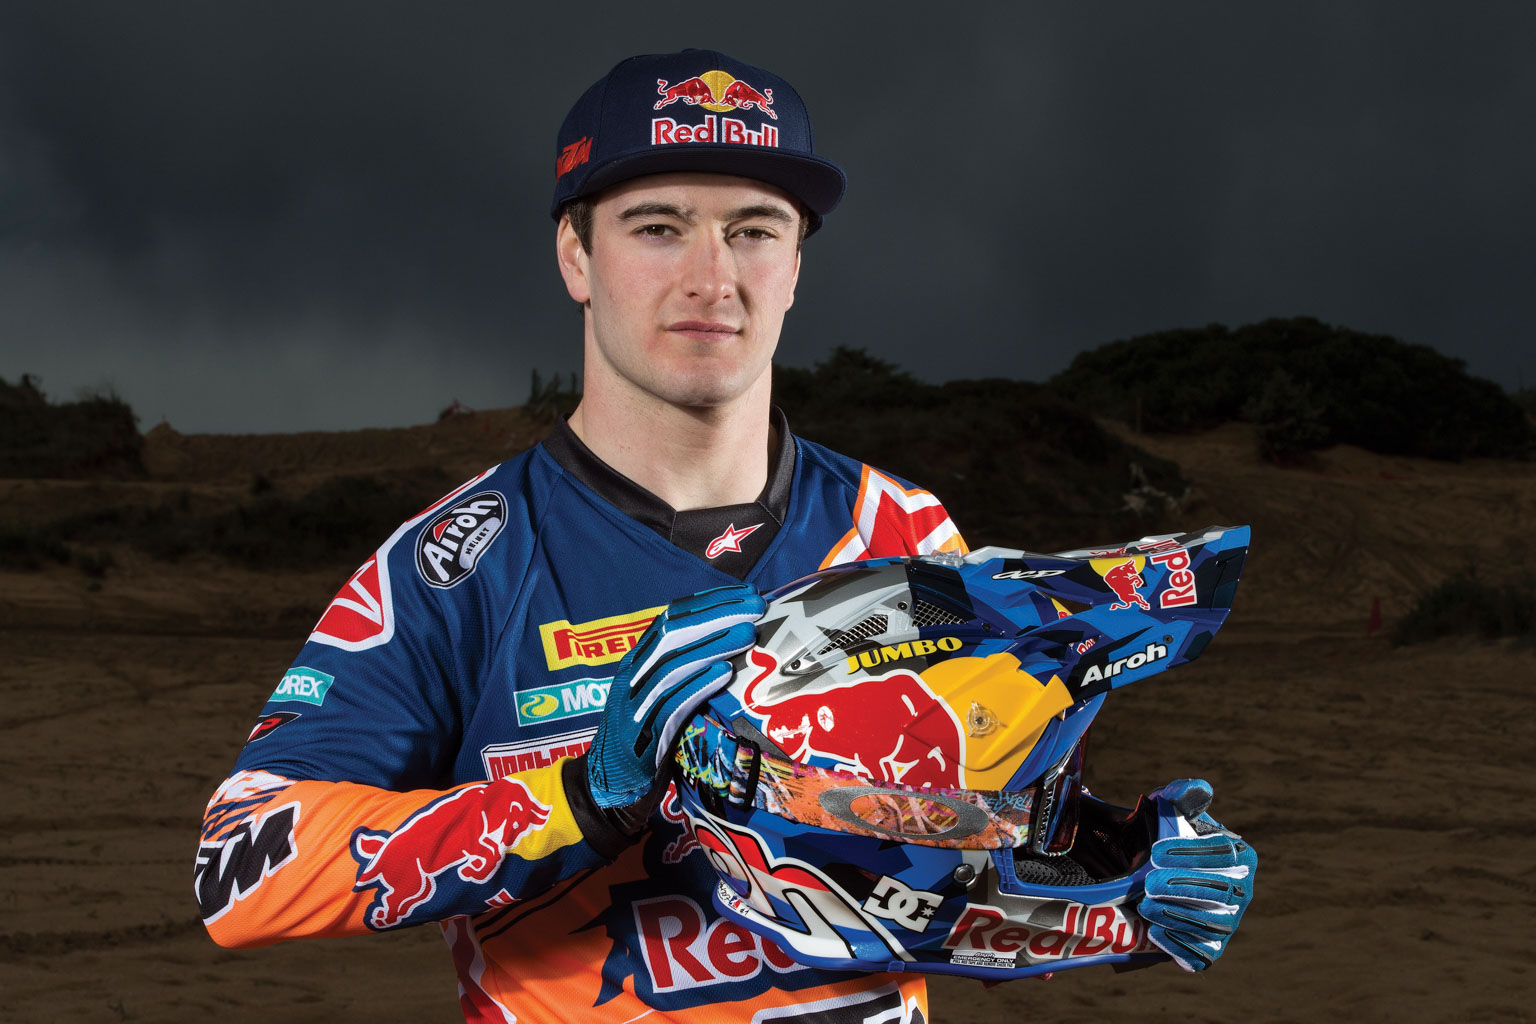 Herlings: Why I'm struggling on a 450 - MotoHead